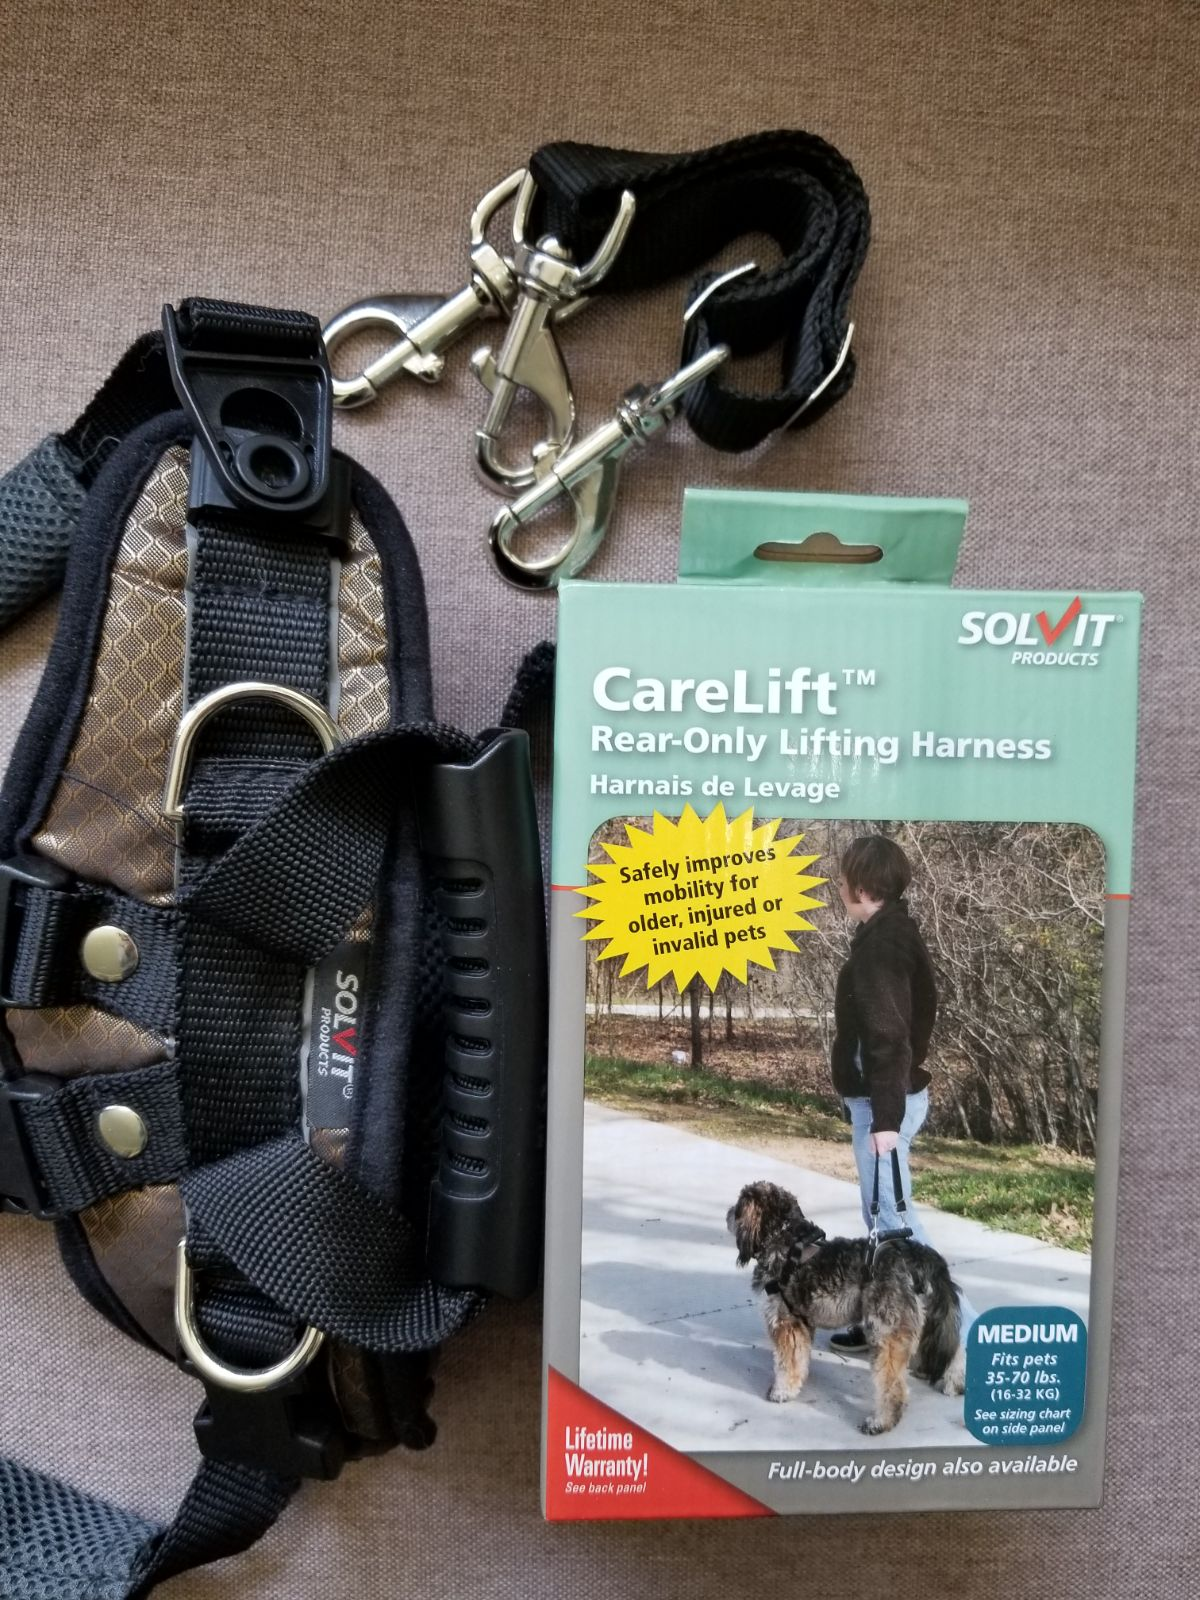 Solvit Carelift rear-only lifting harnes